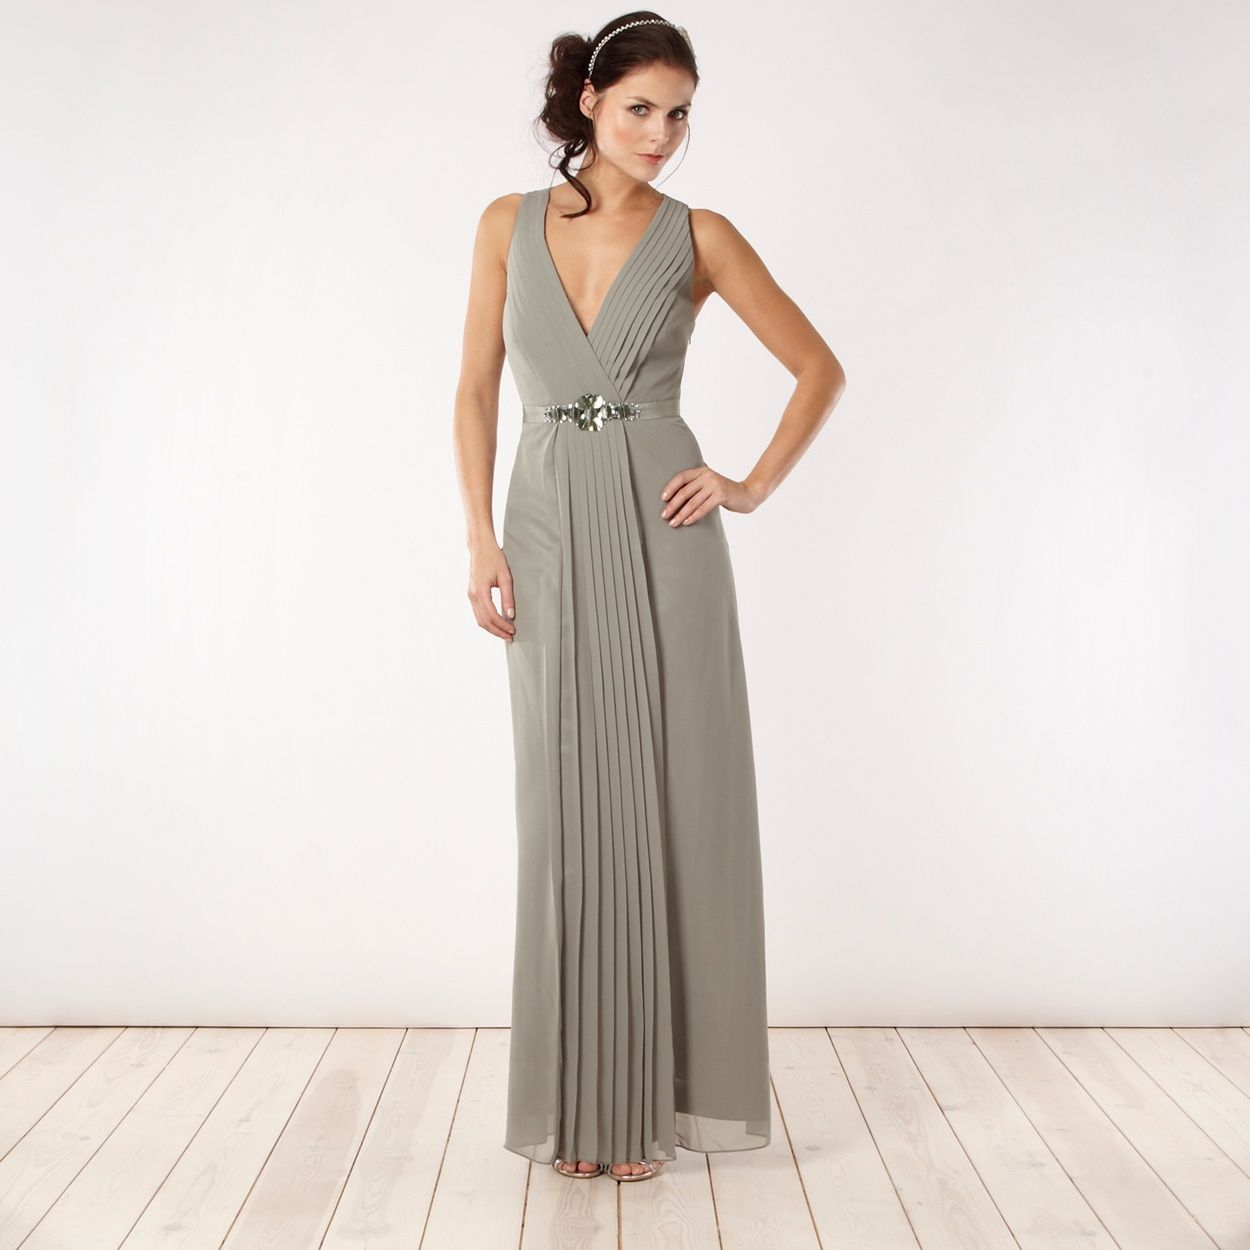 No 1 jenny packham designer light green embellished waist dress 1 jenny packham designer light green embellished waist dress at debenhams mobile bridesmaid y possible ombrellifo Images